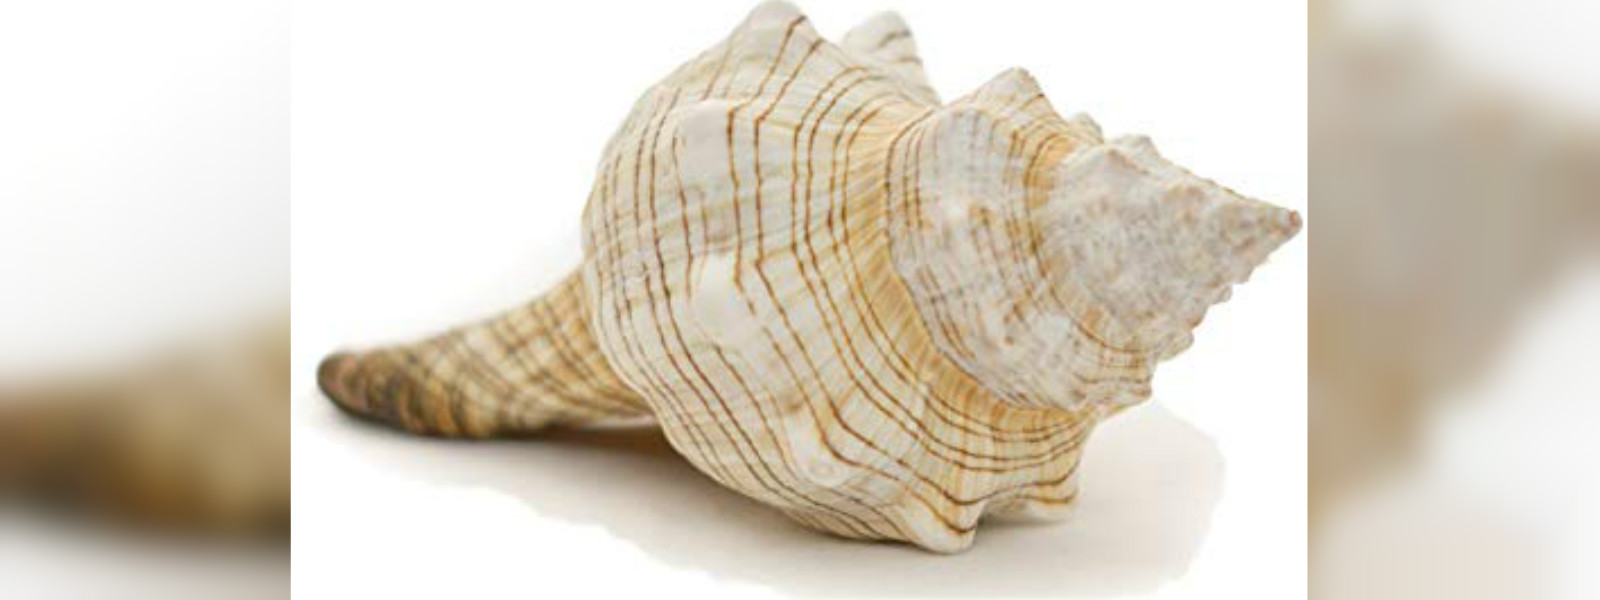 29 year old arrested with 19 conch shells in Batticoloa